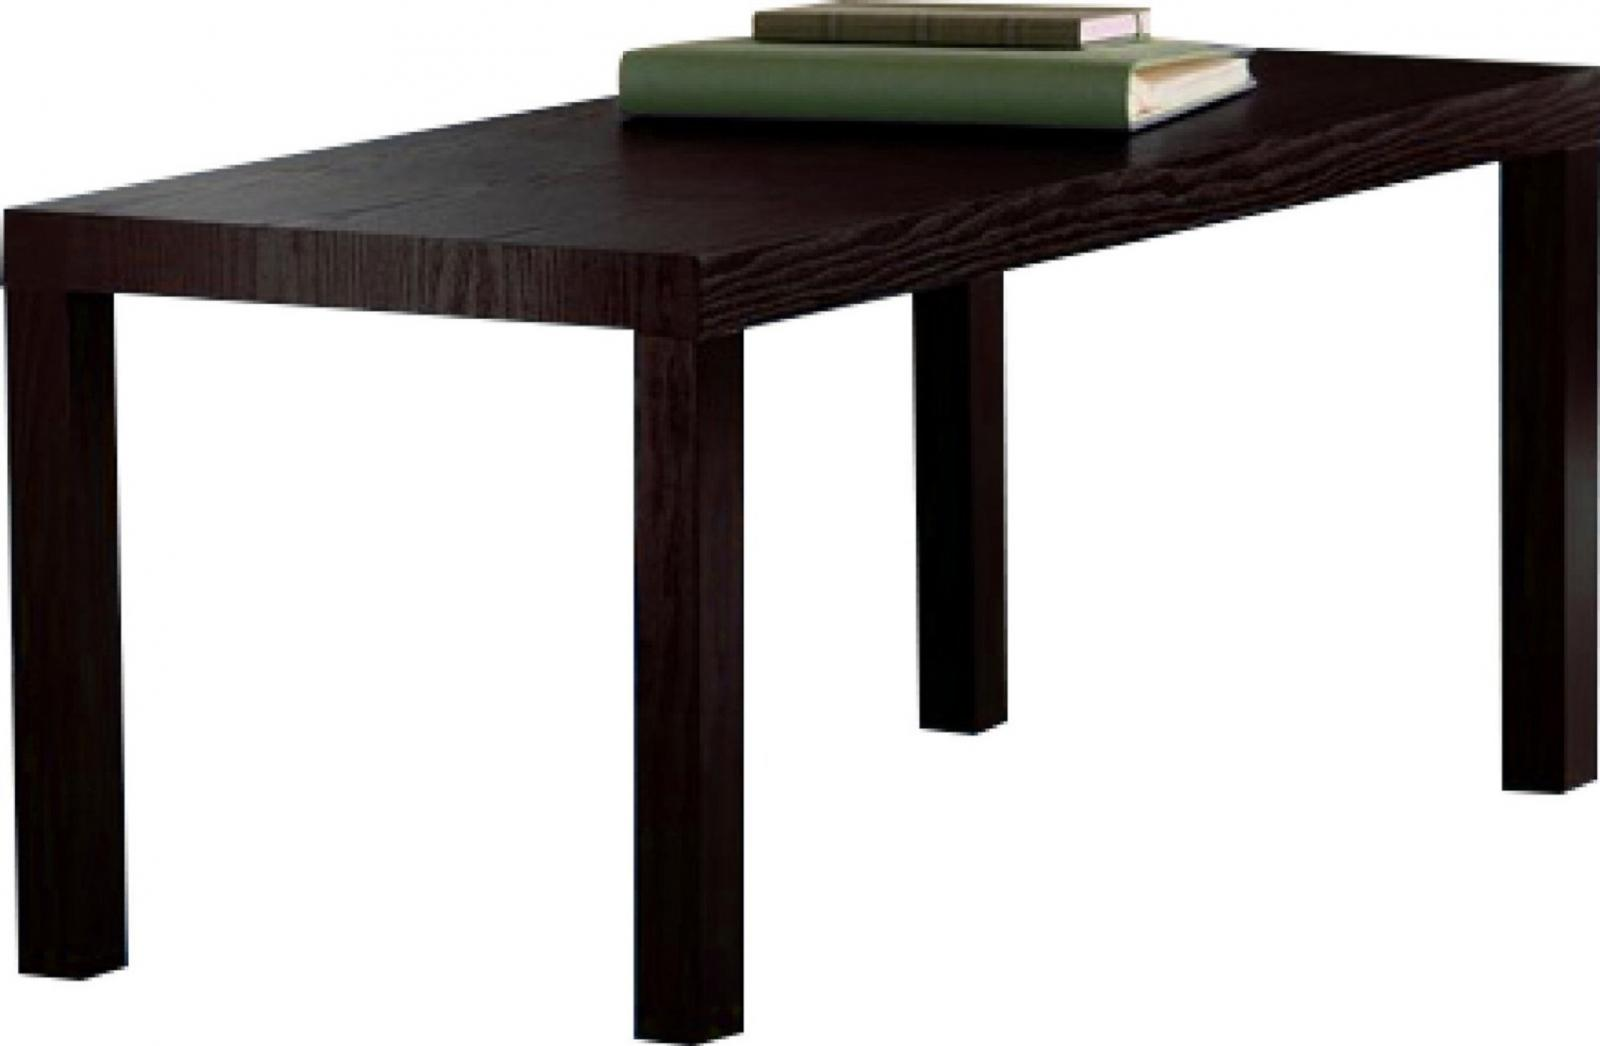 NEW Durable Modern Coffee Table, Easy Assemble, Dark